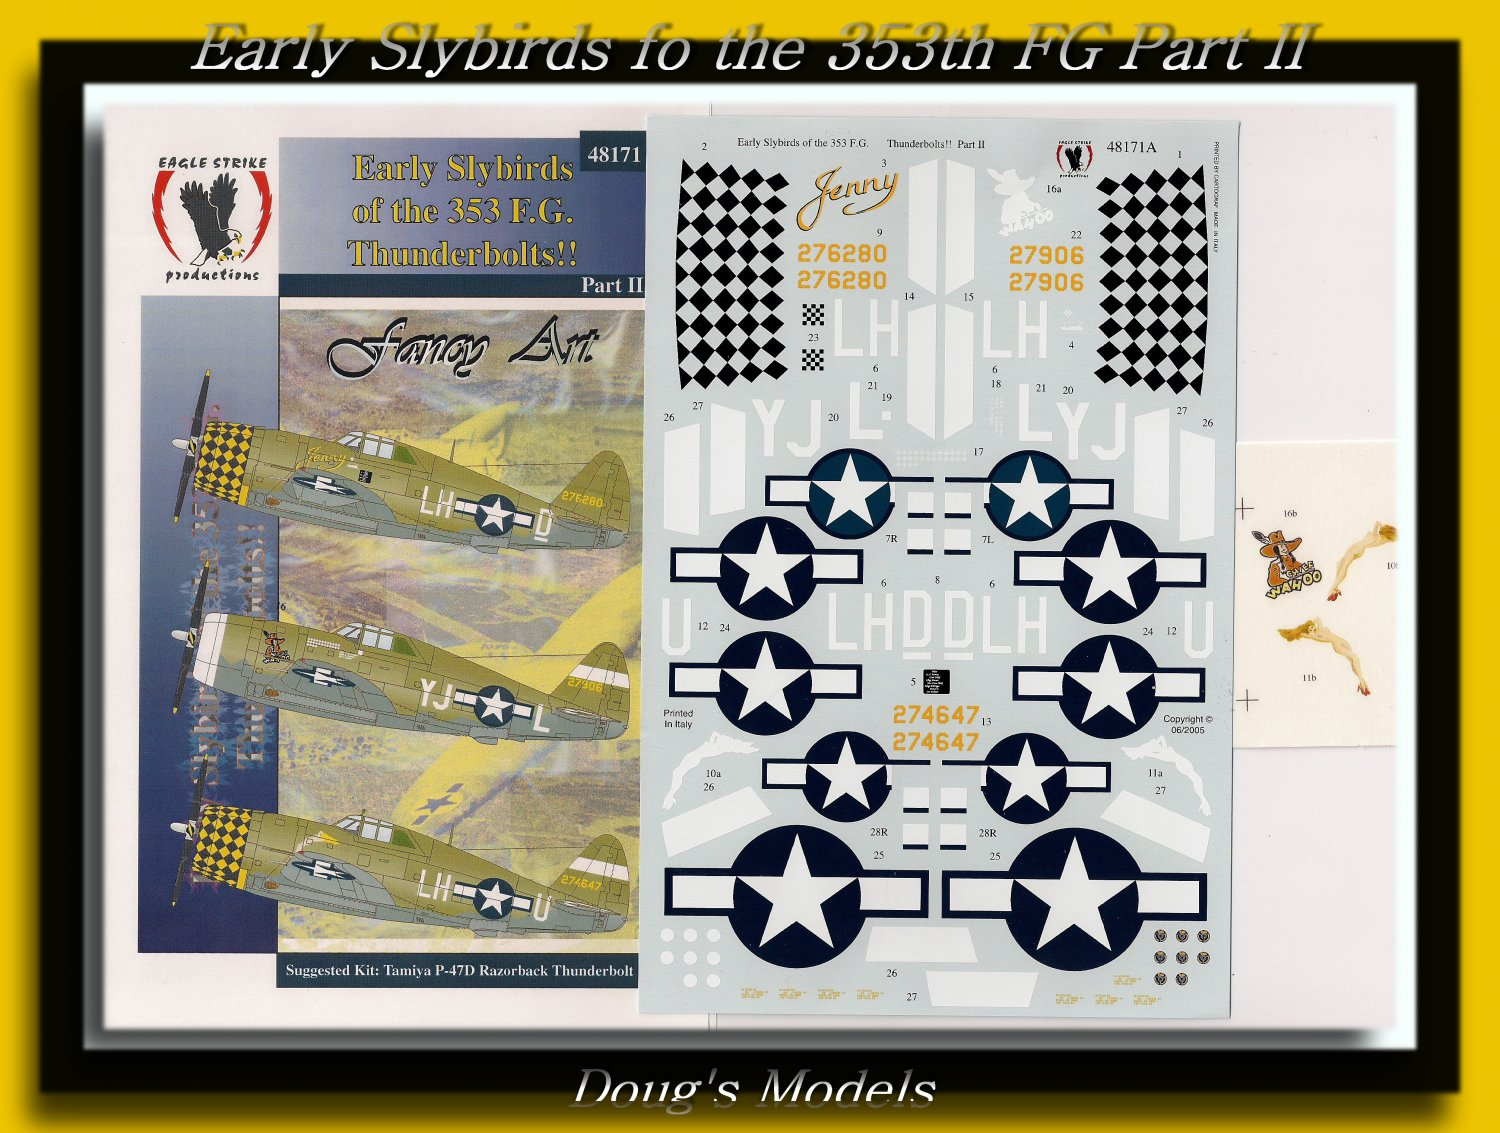 Eagle Strike 1/48 Early Slybirds of the 353 Fg. (P-47D) Part II 48171